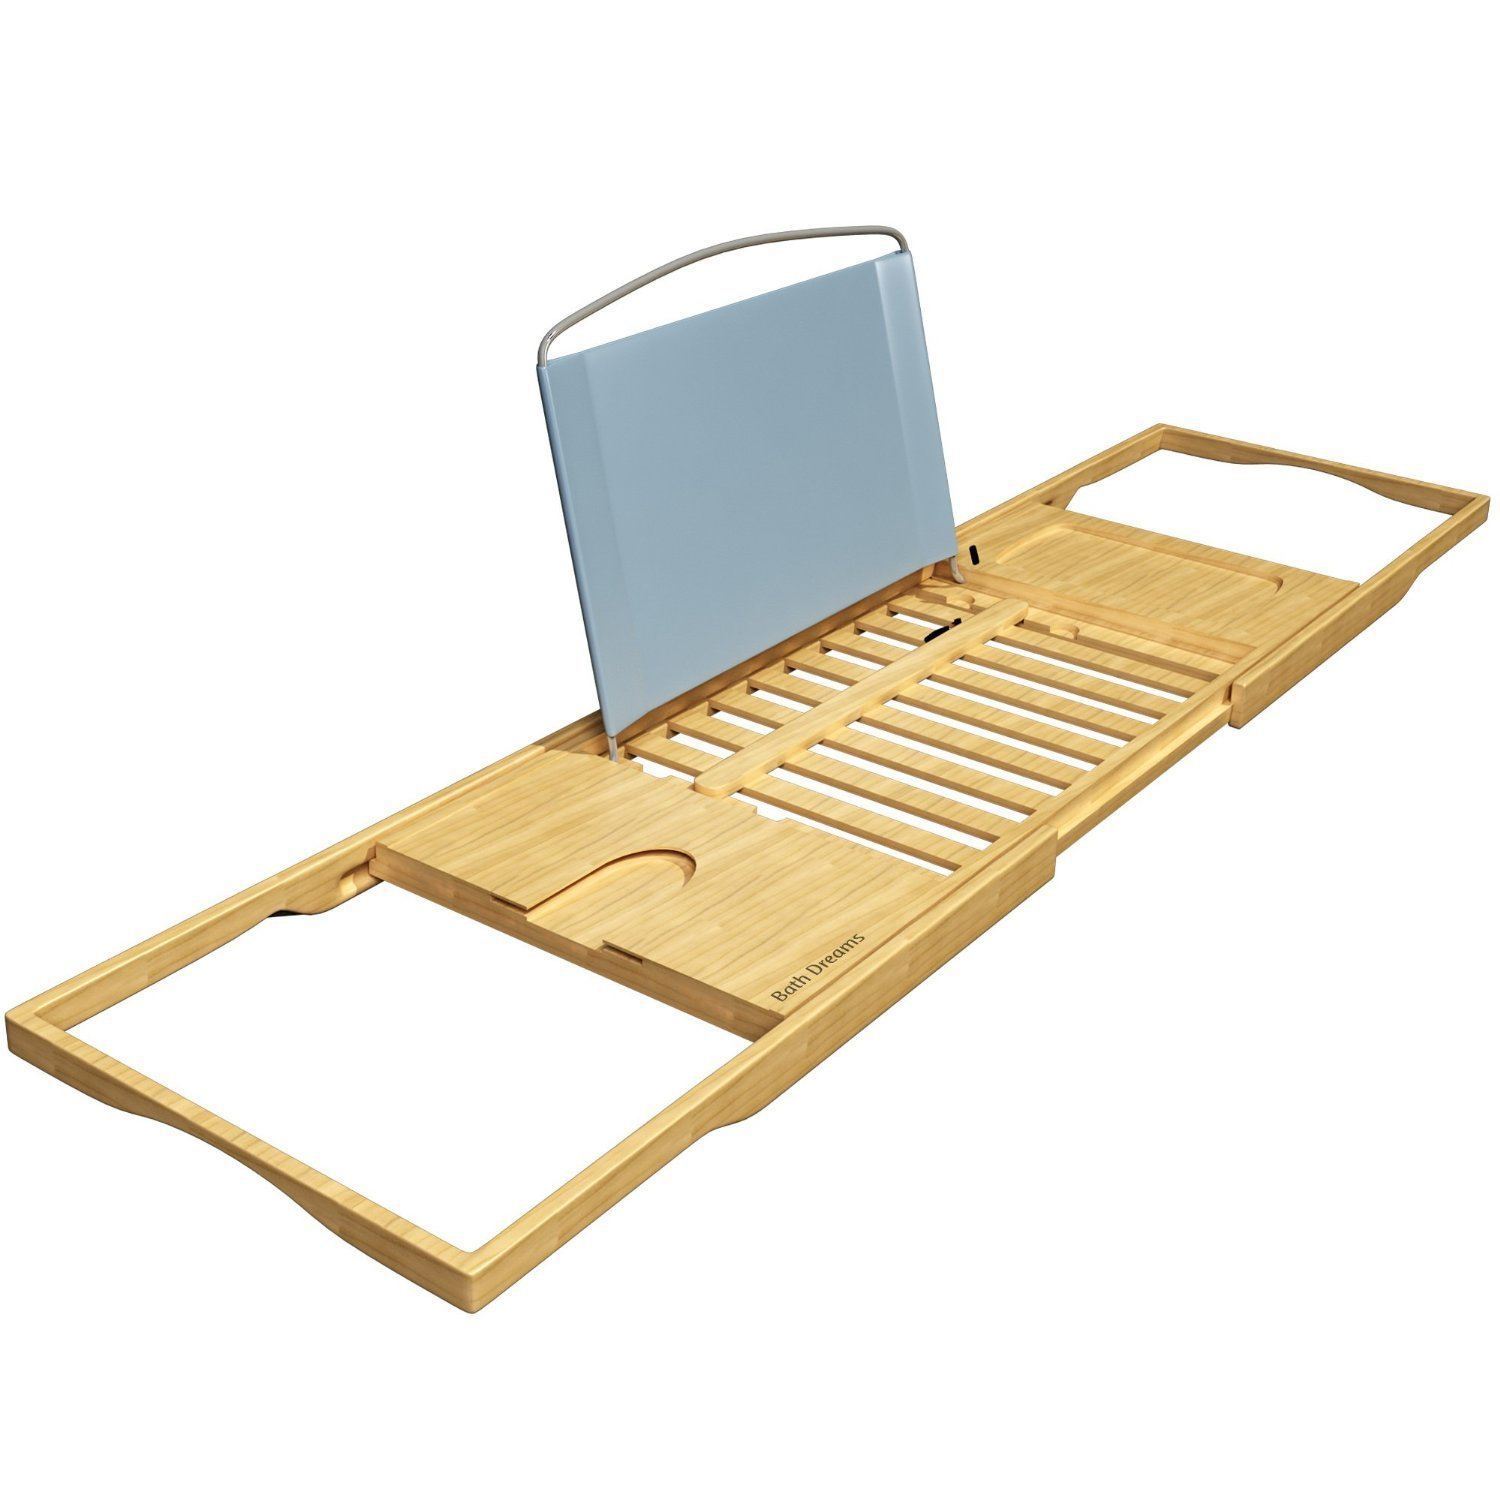 a5f8c56655e01 Amazon.com: Bath Dreams Luxury Bamboo Bathtub Caddy Tray with Extending  Sides: Home & Kitchen